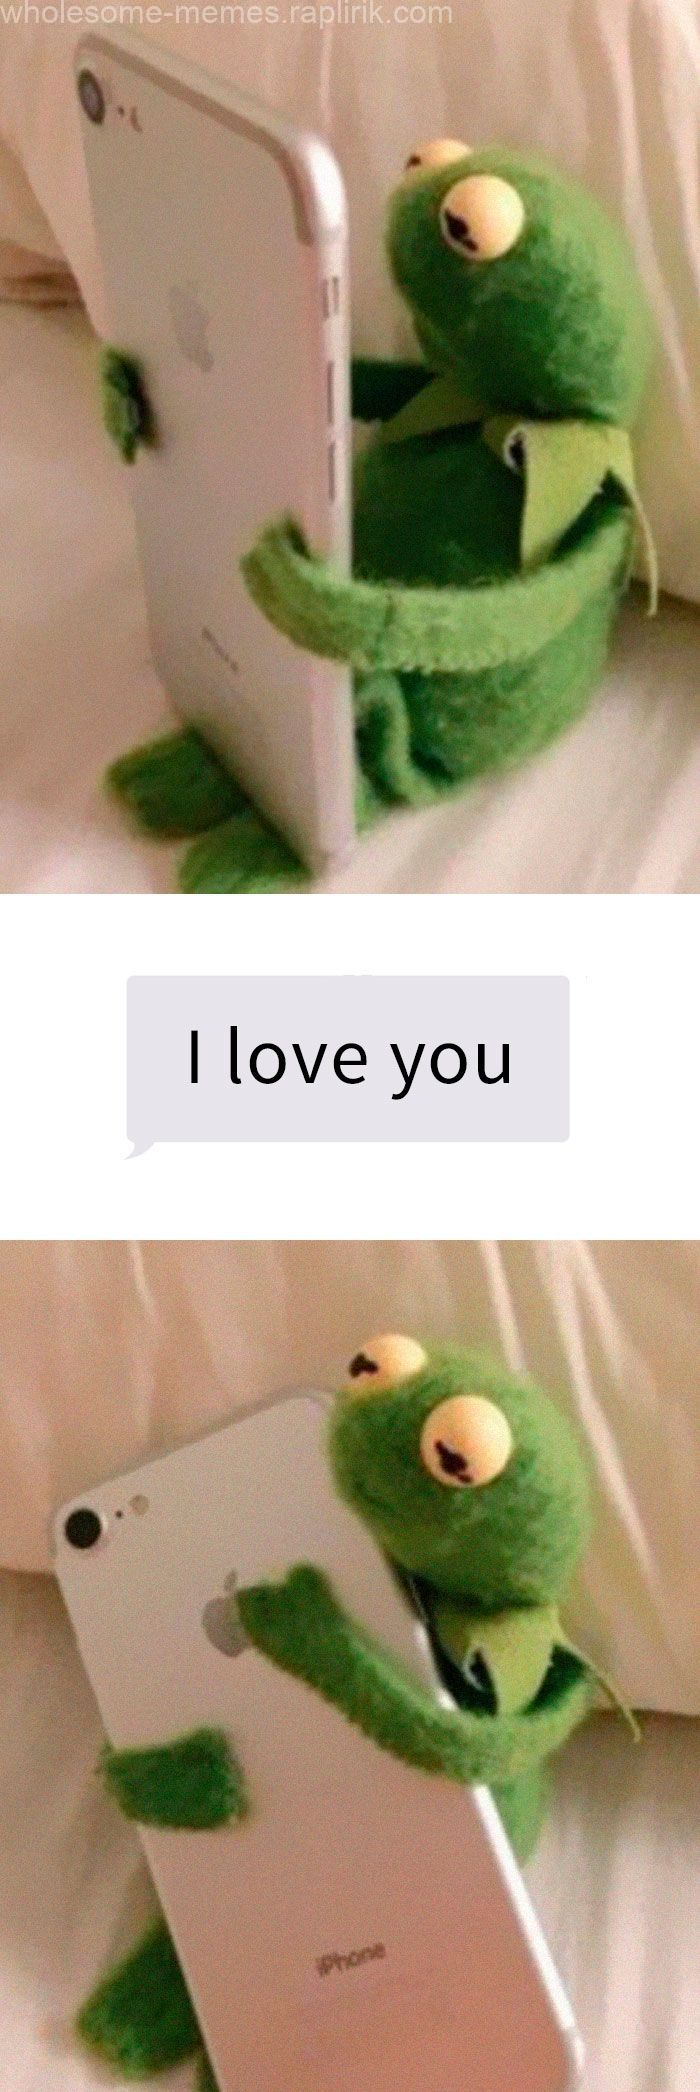 Cute Memes To Send To Your Boyfriend